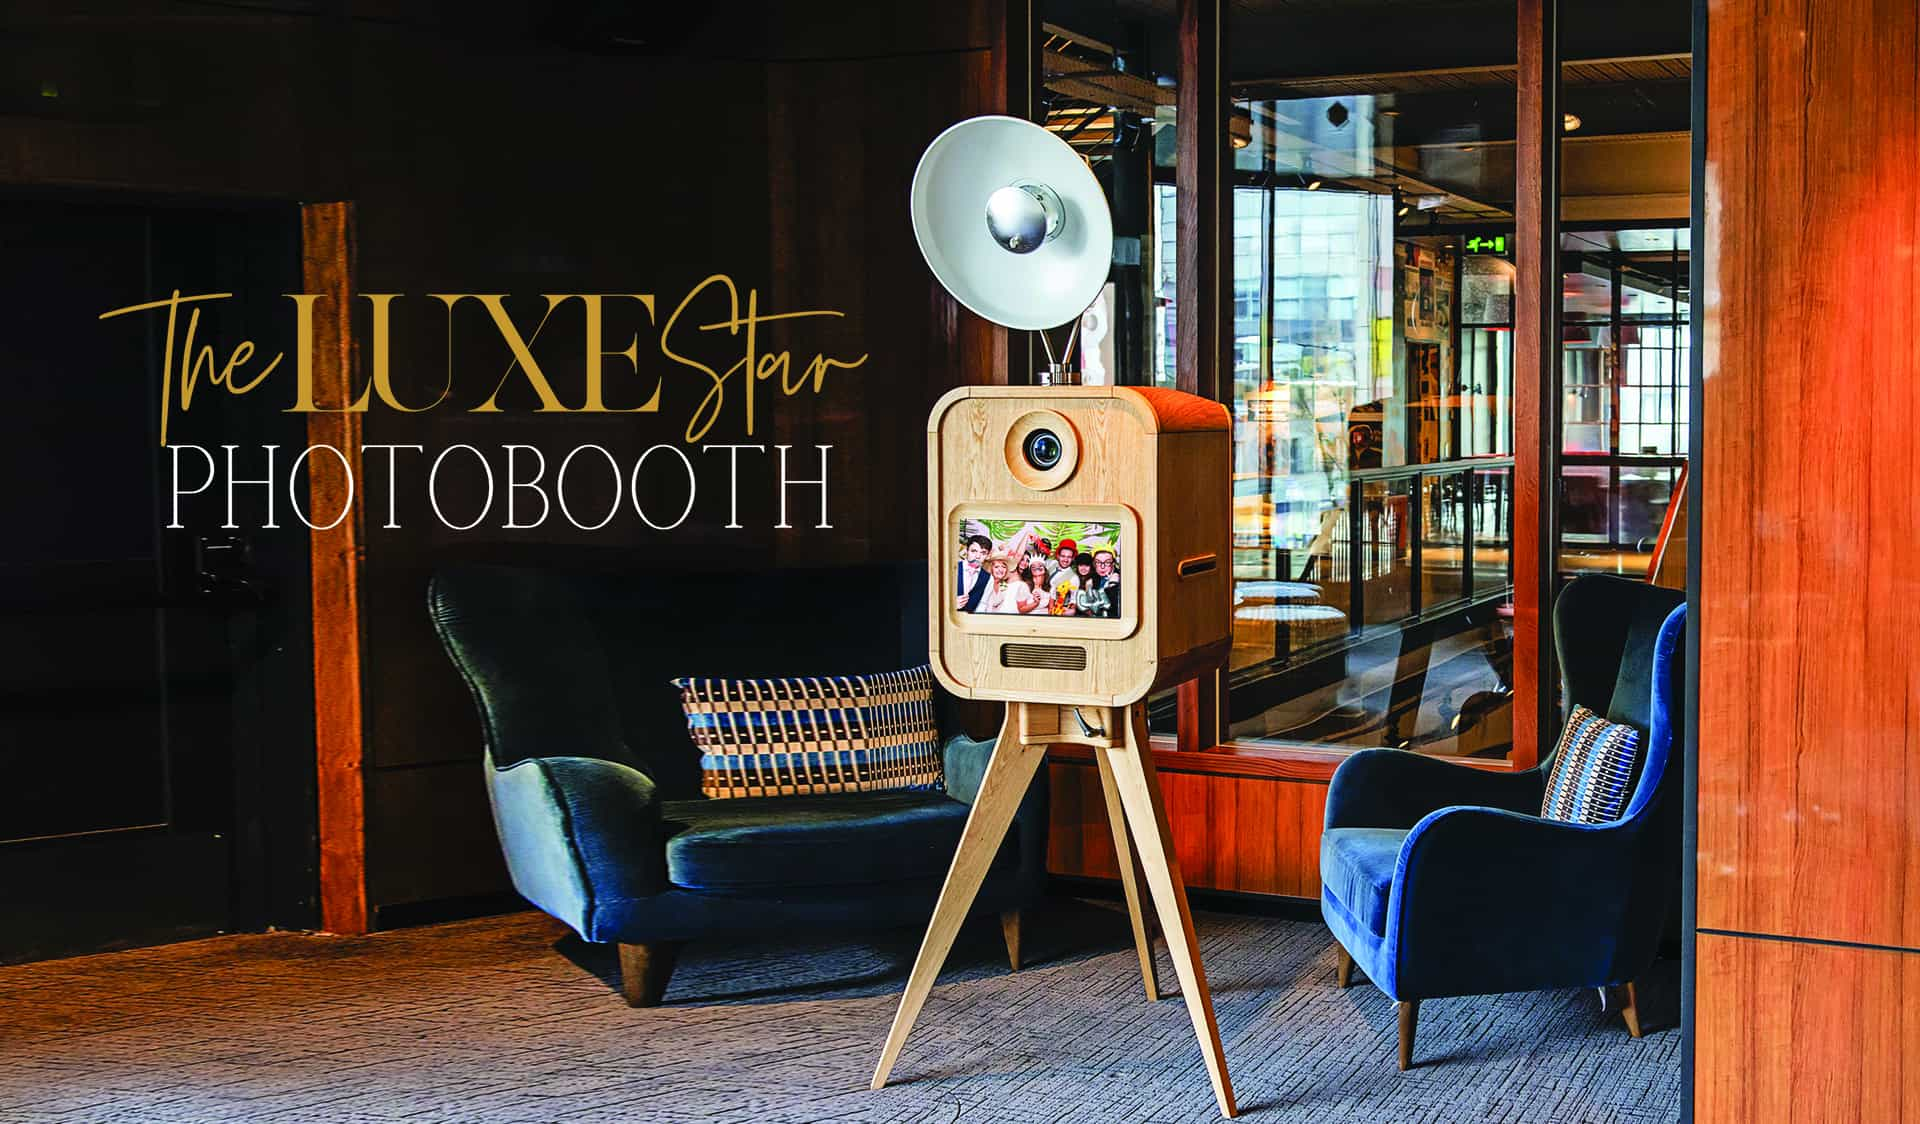 Introducing the LUXESTAR photo booth